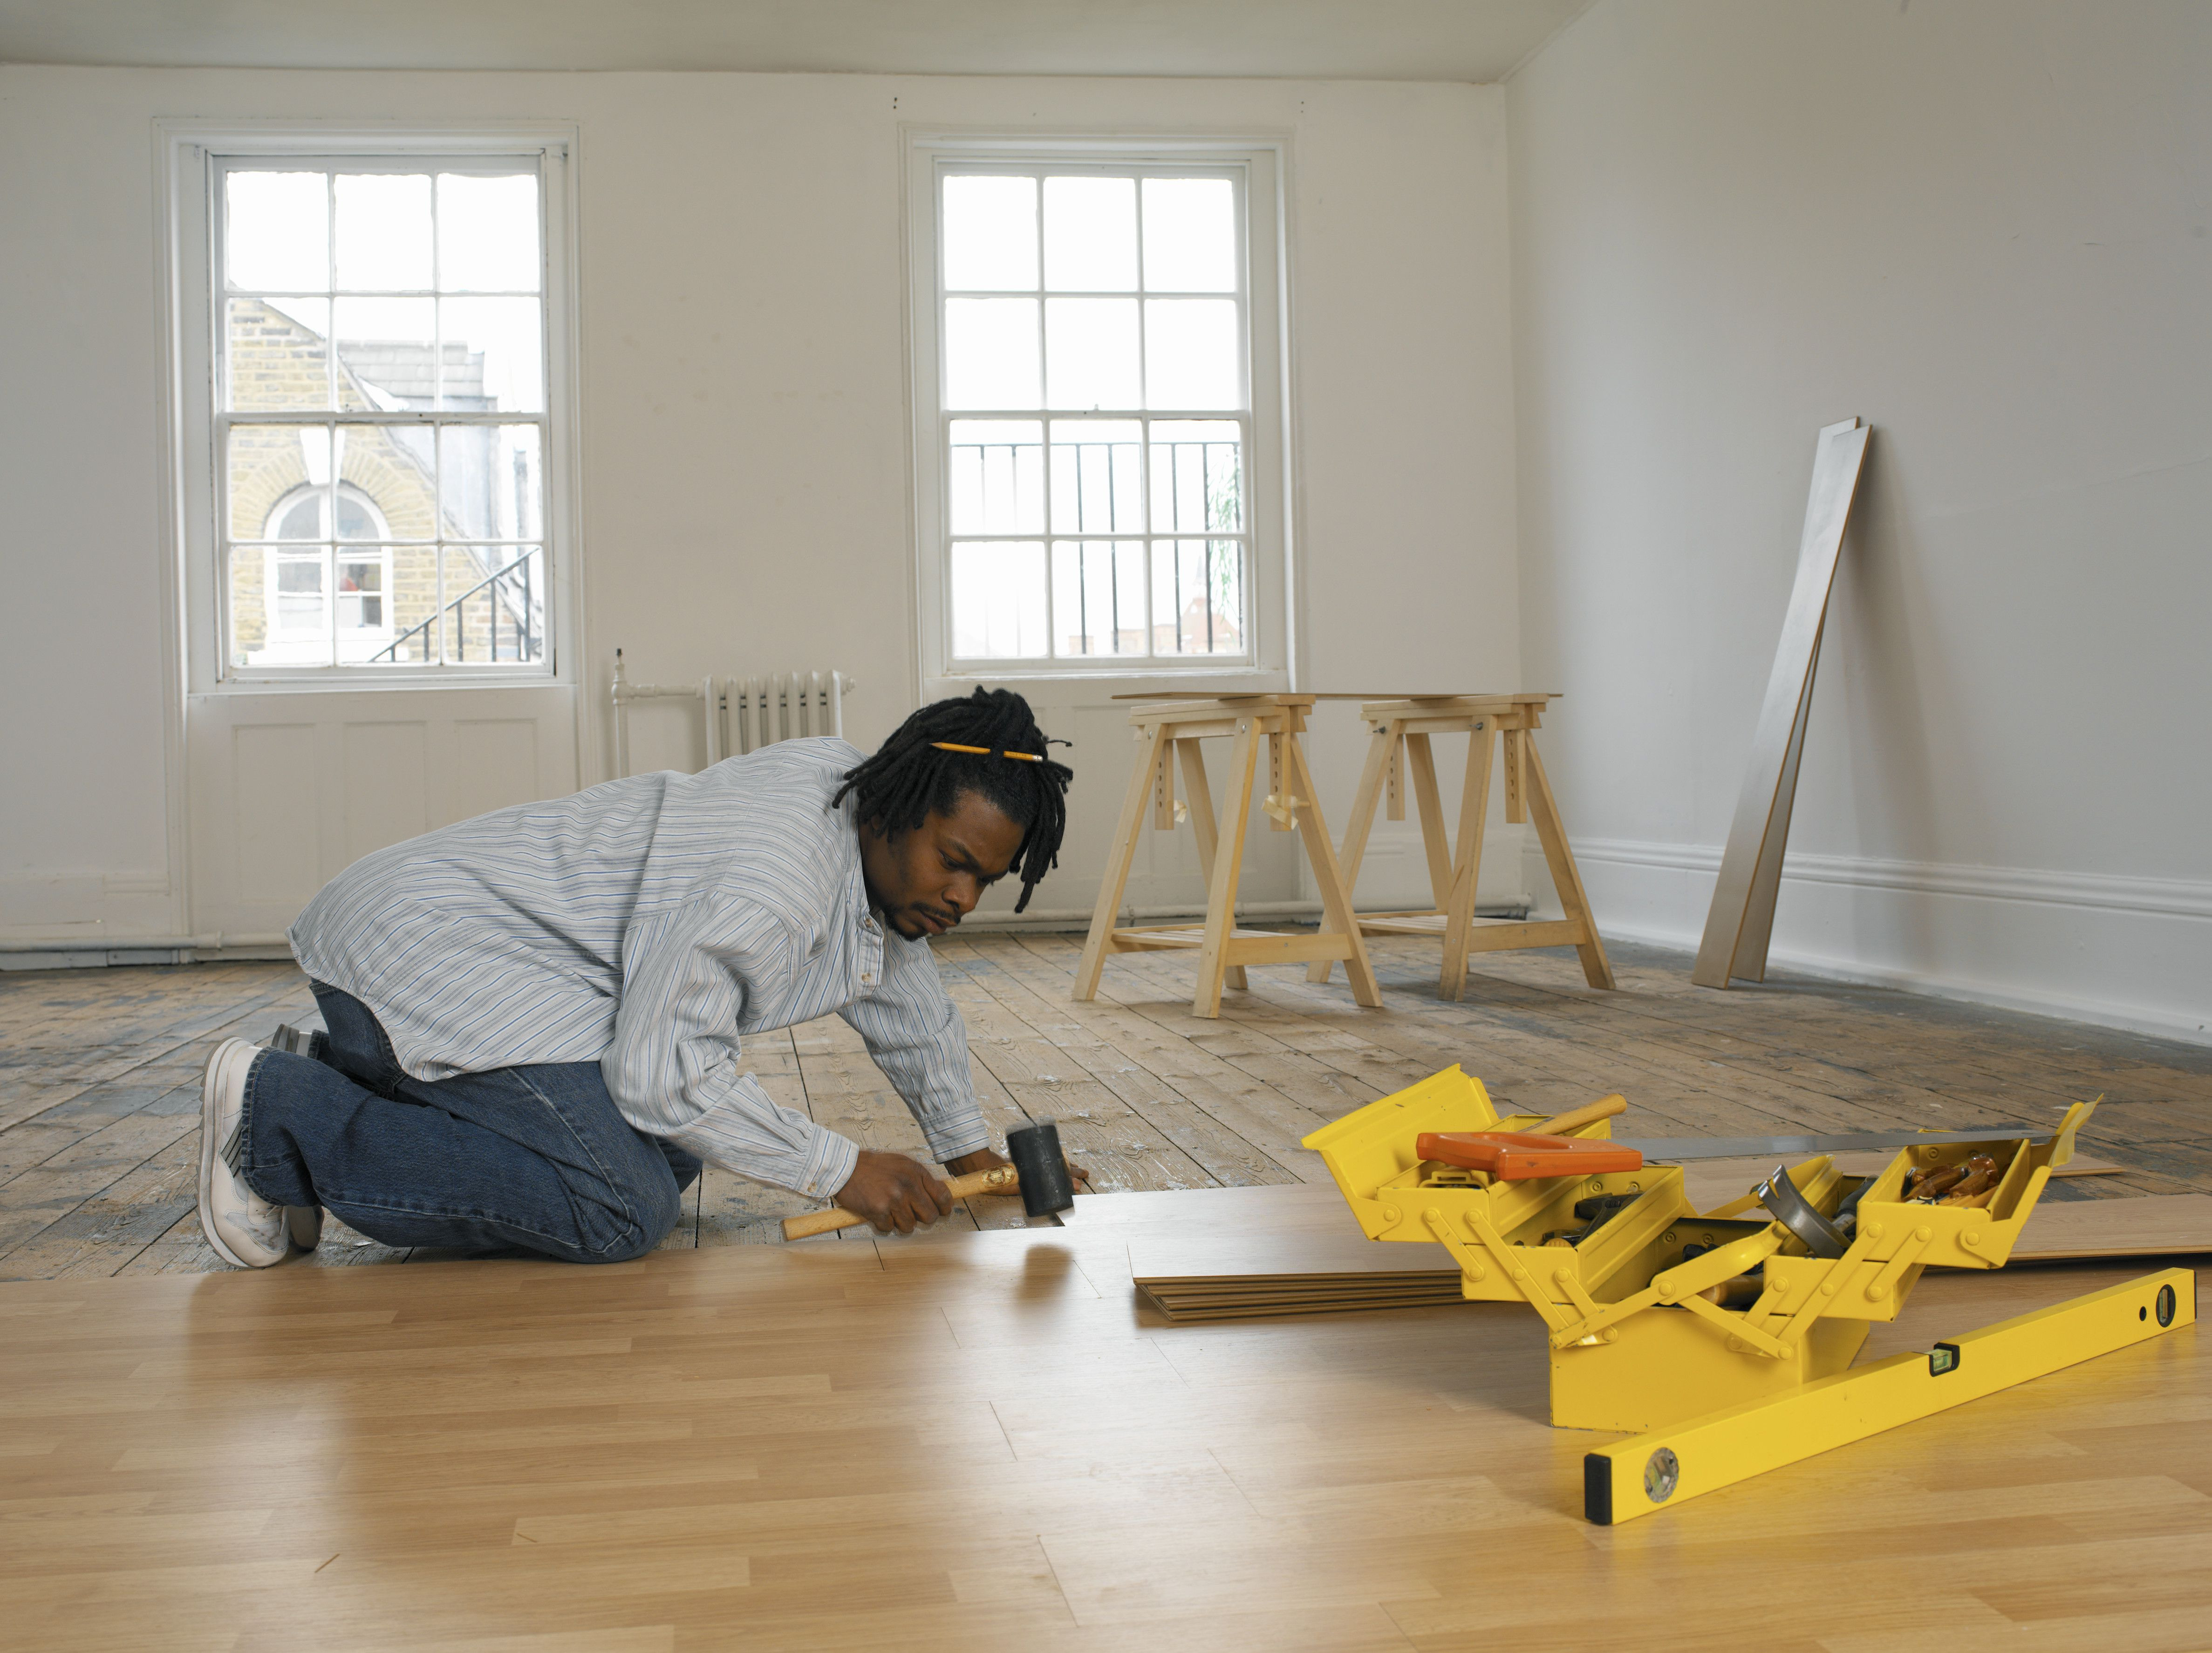 Laminate Flooring Vs Hardwood Price Of Major Manufacturing Brands for Laminate Flooring Inside Laying Laminate Flooring